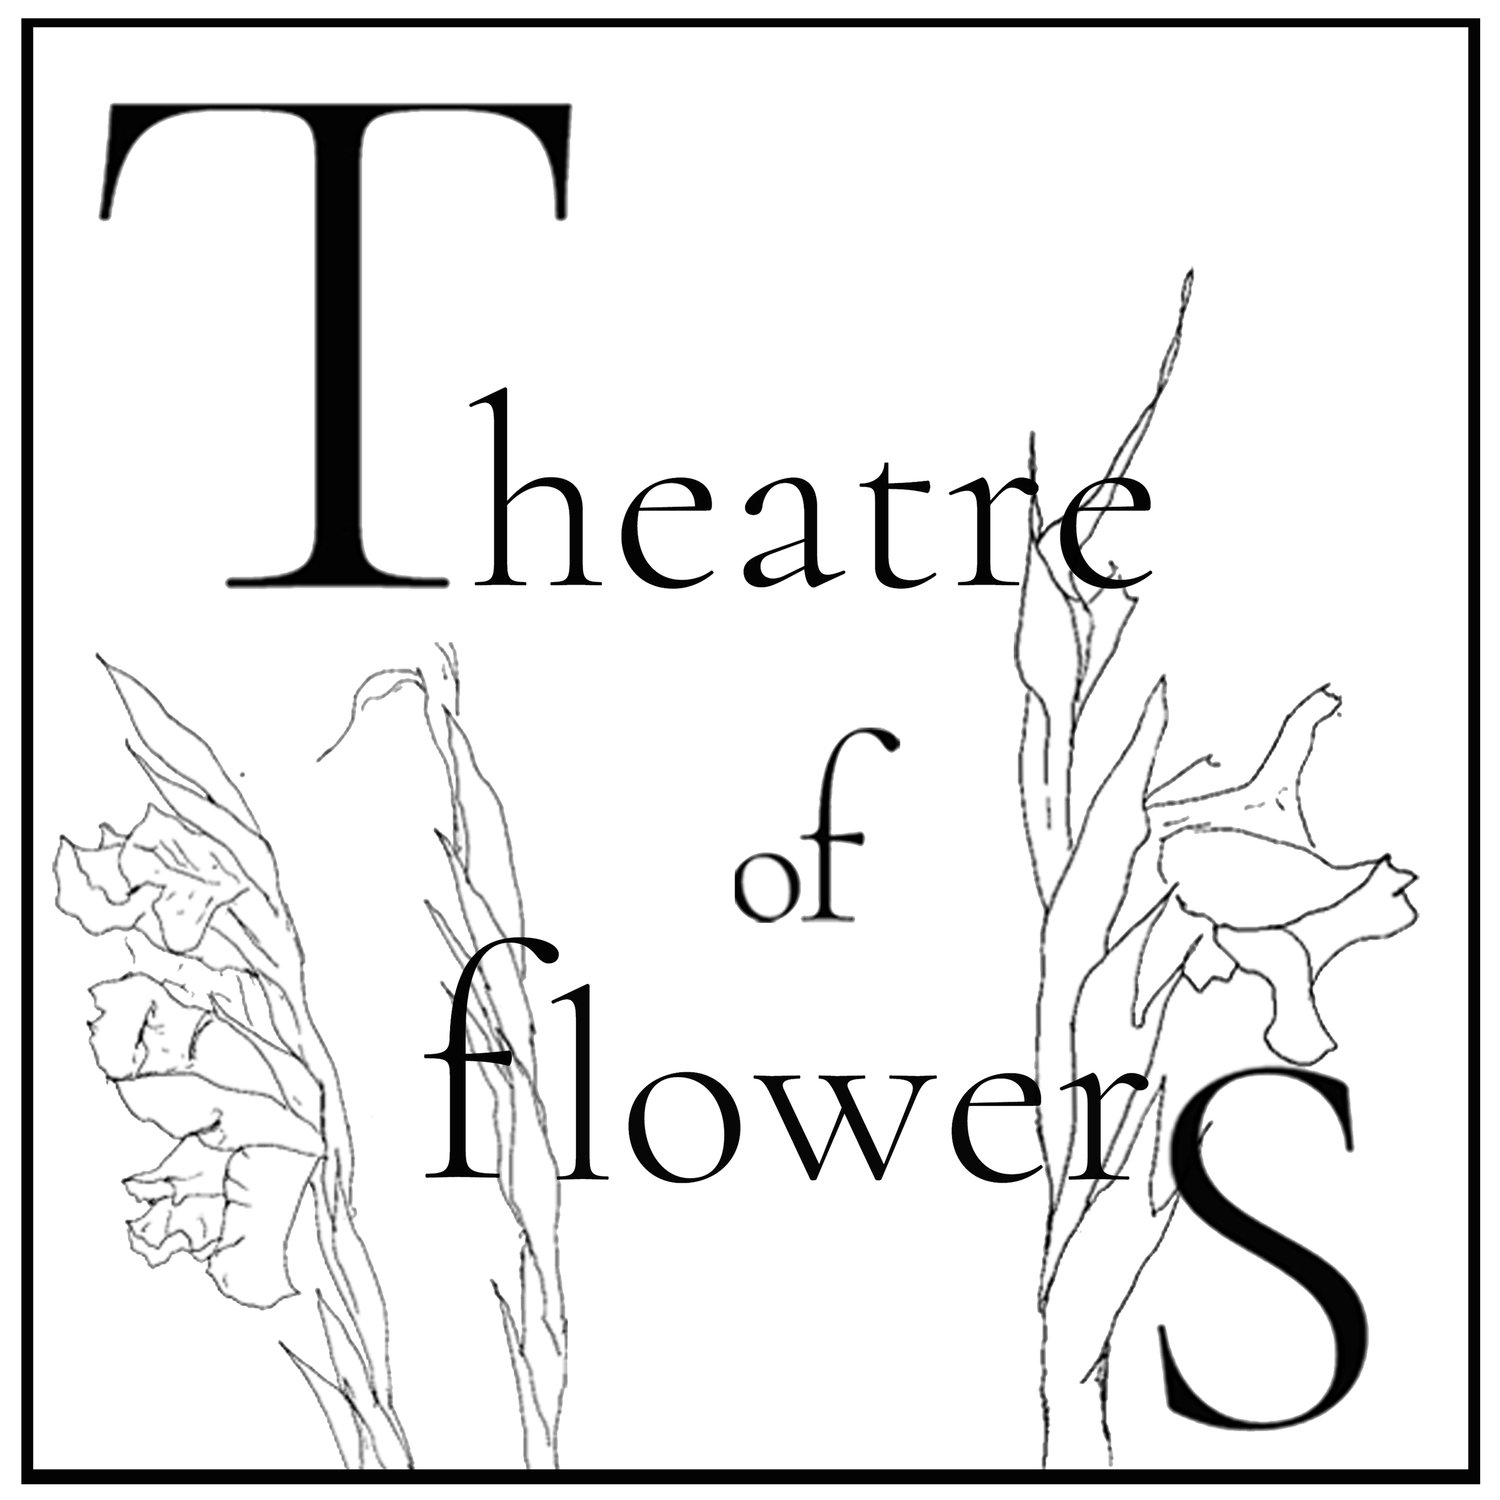 Theatre of Flowers